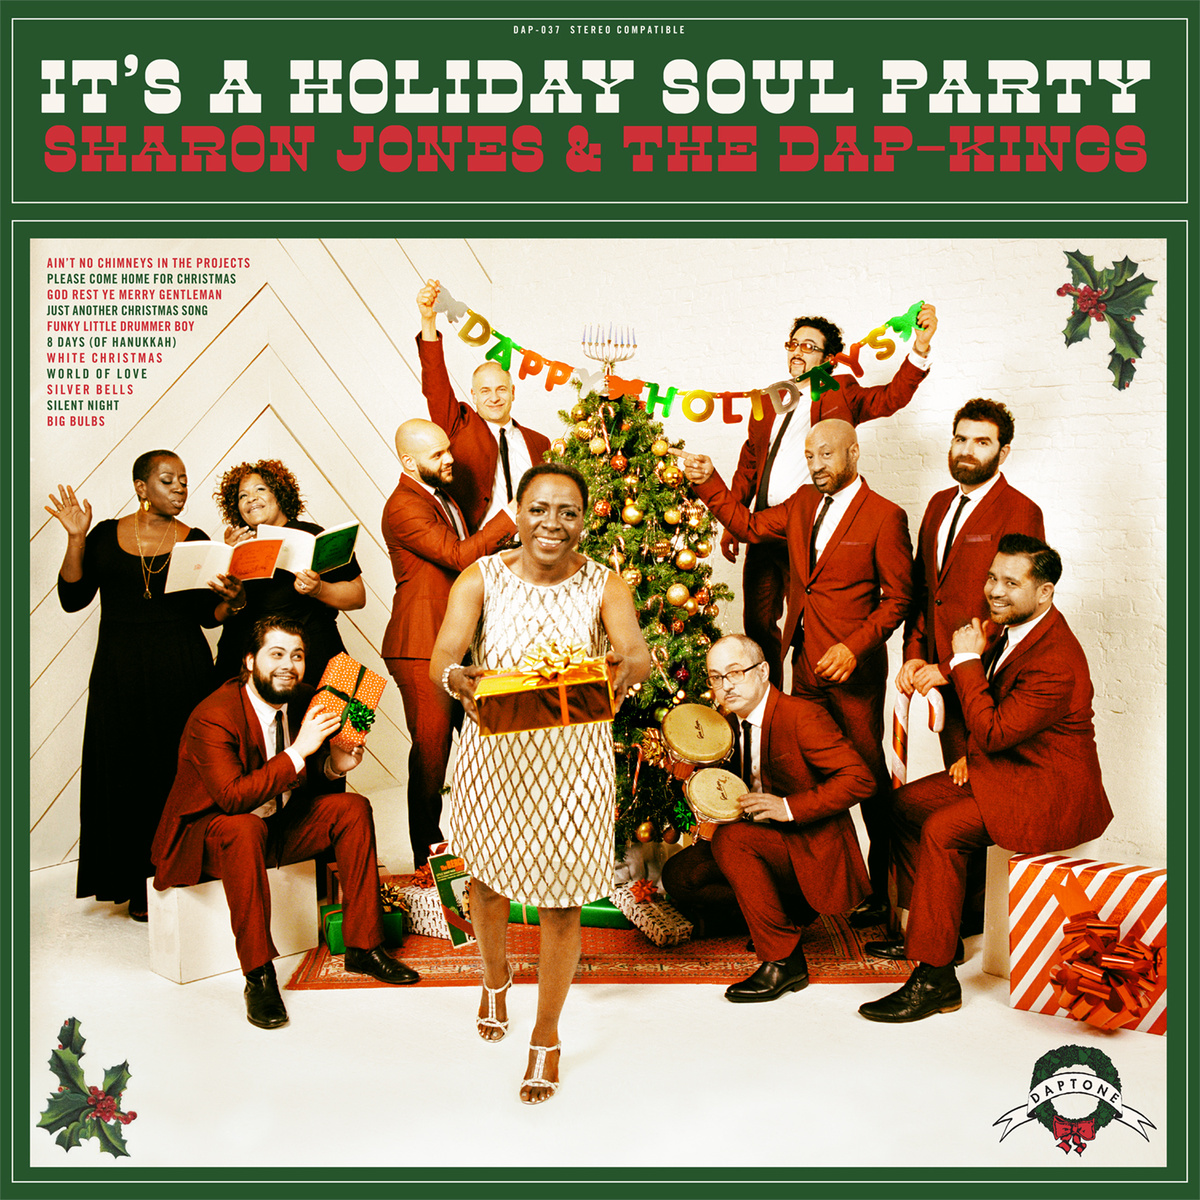 Sharon Jones & The Dap-Kings – It's a Holiday Soul Party